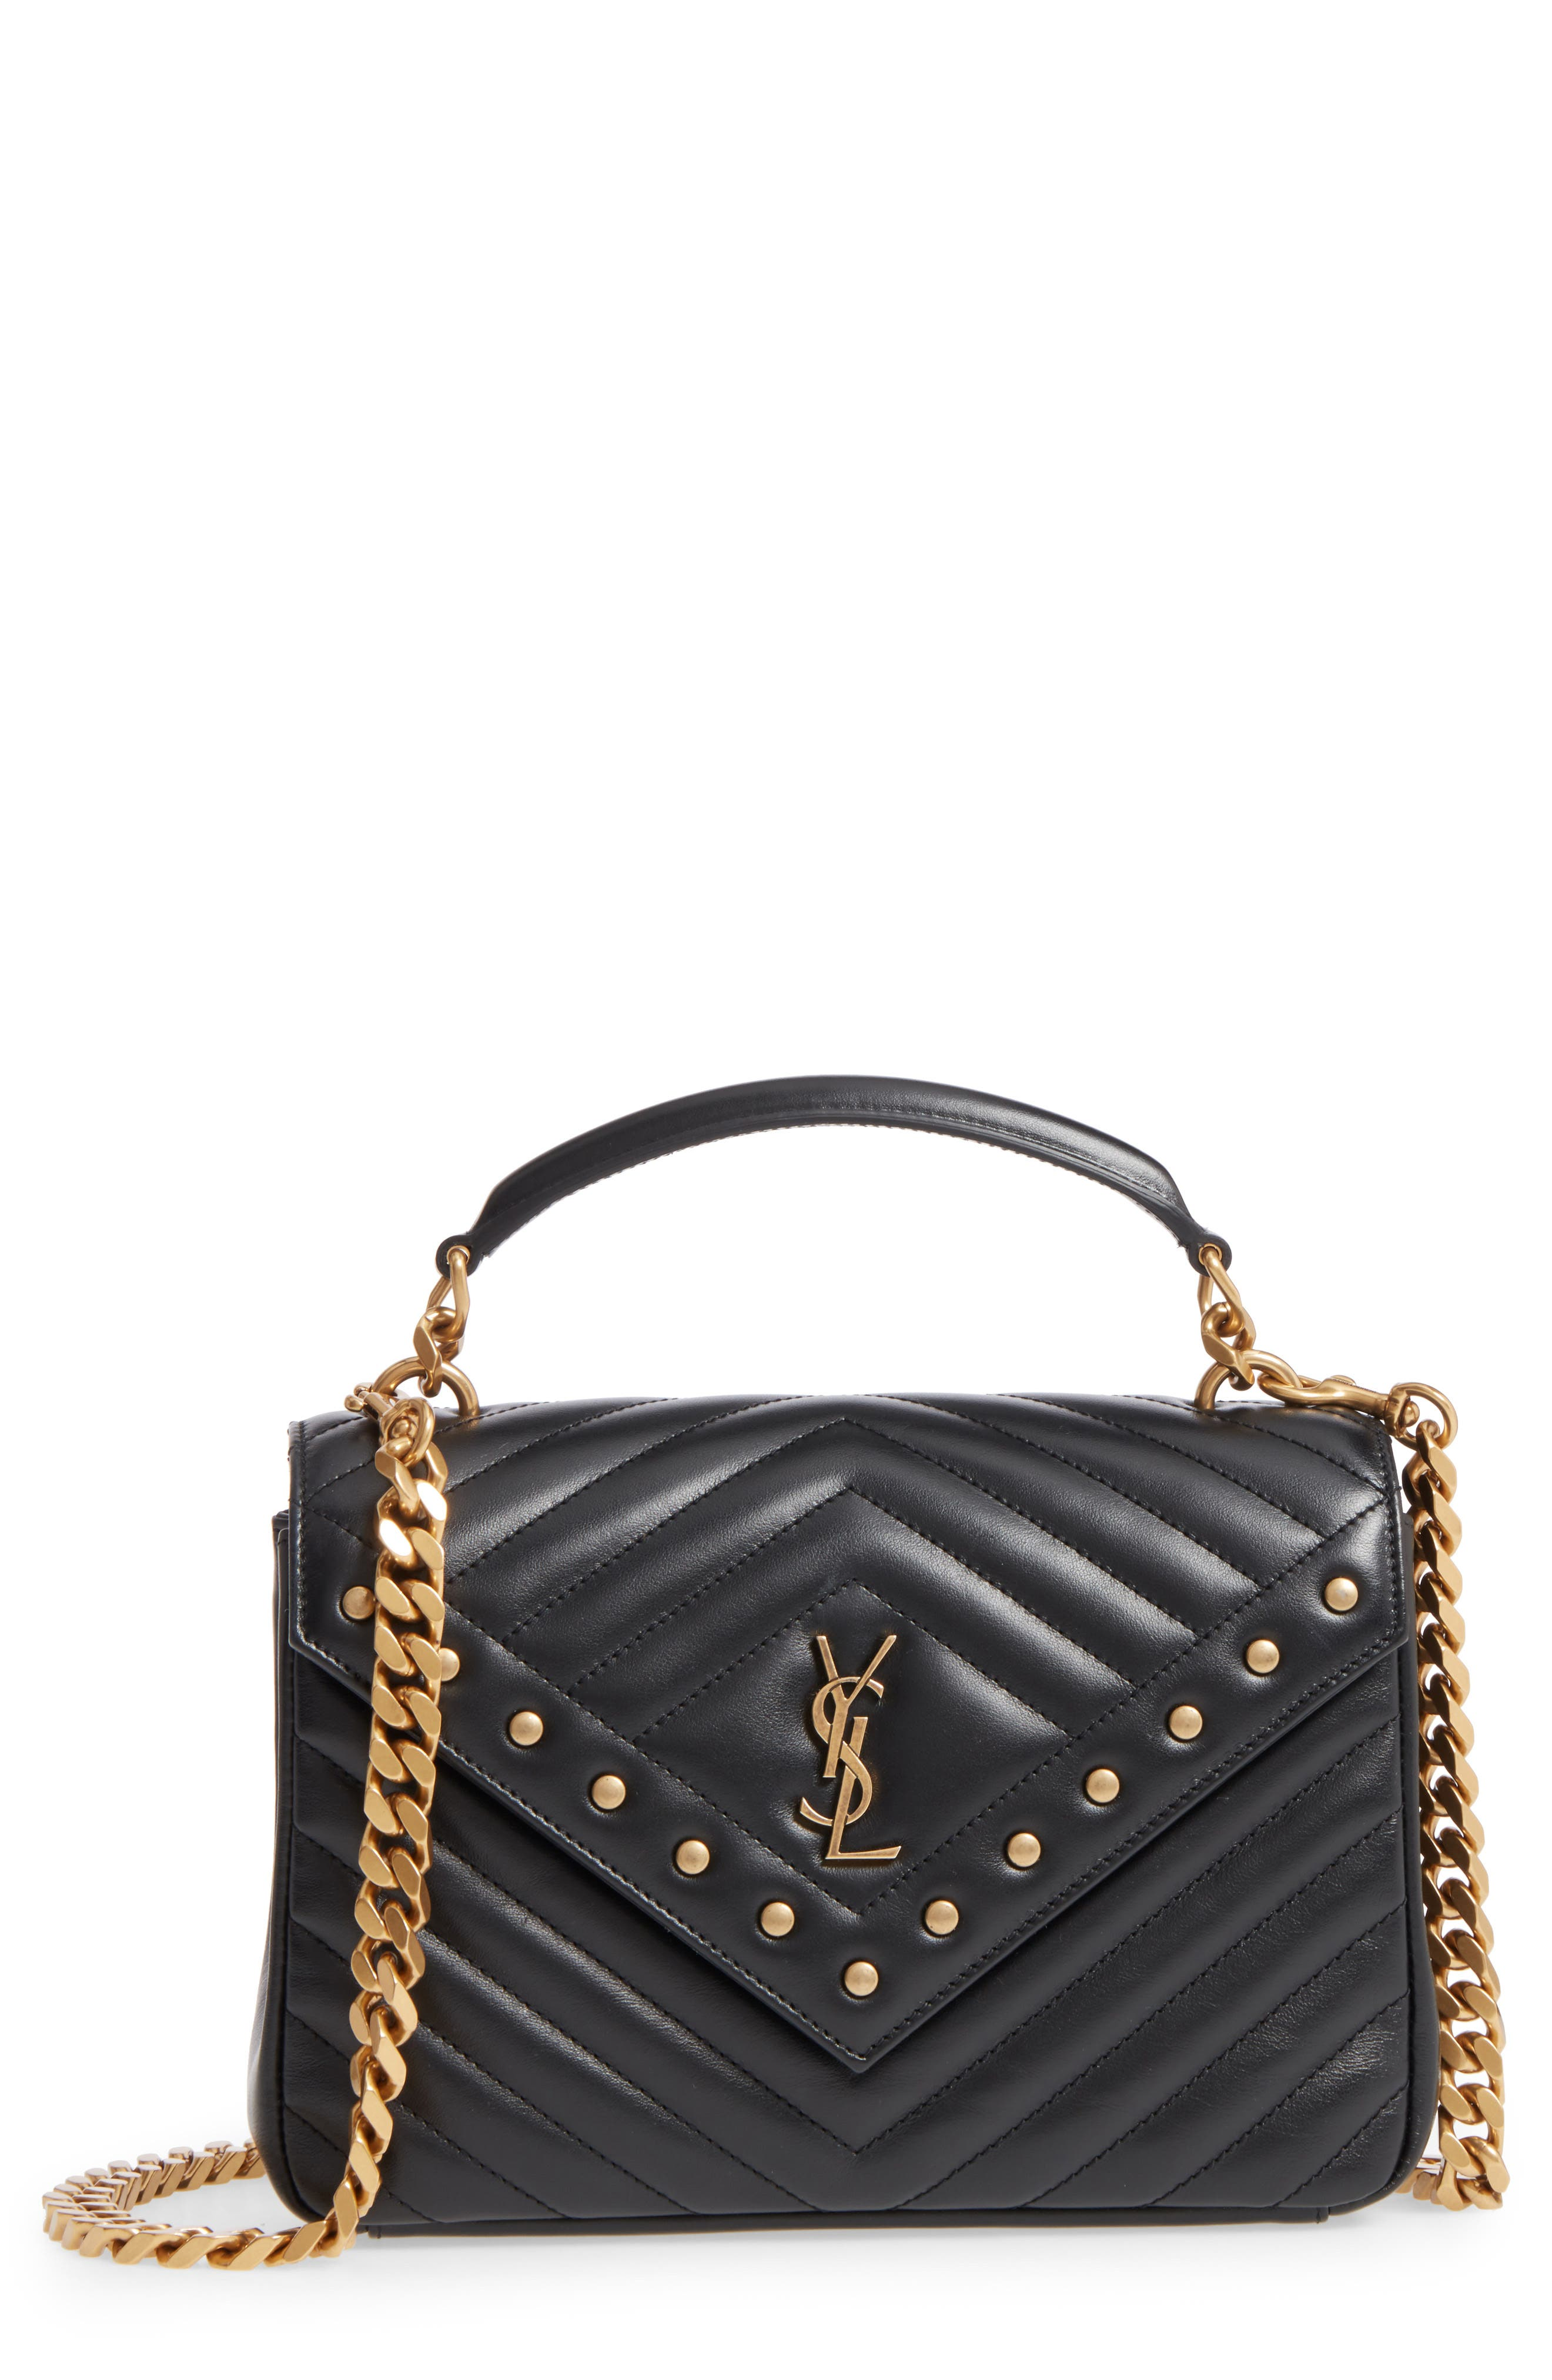 Saint Laurent Medium College Studded Matelassé Leather Satchel